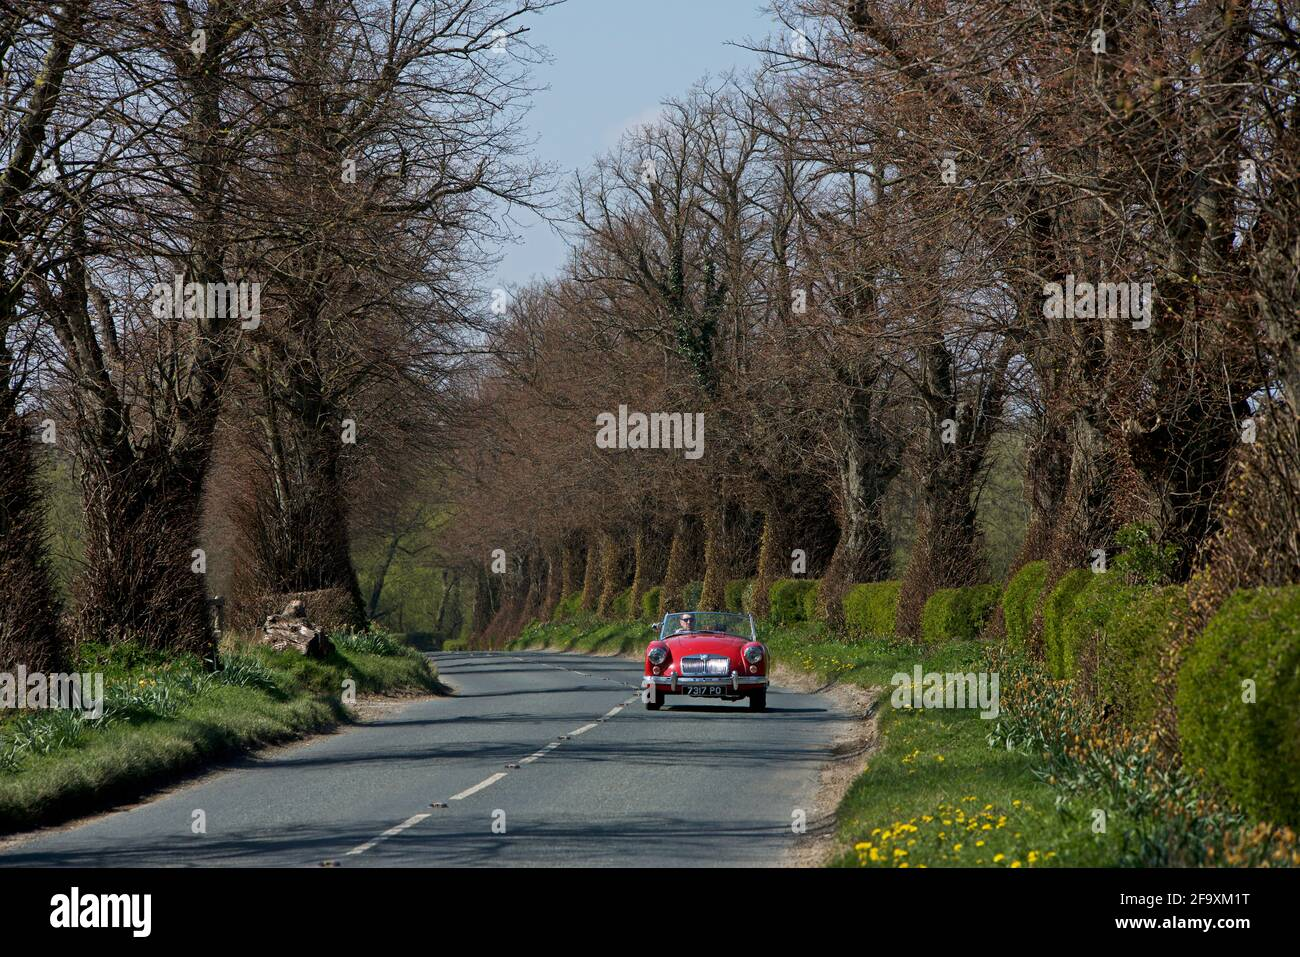 open-topped-sports-car-on-road-lined-with-trees-and-hedges-near-ulleskelf-north-yorkshire-england-uk-2F9XM1T.jpg